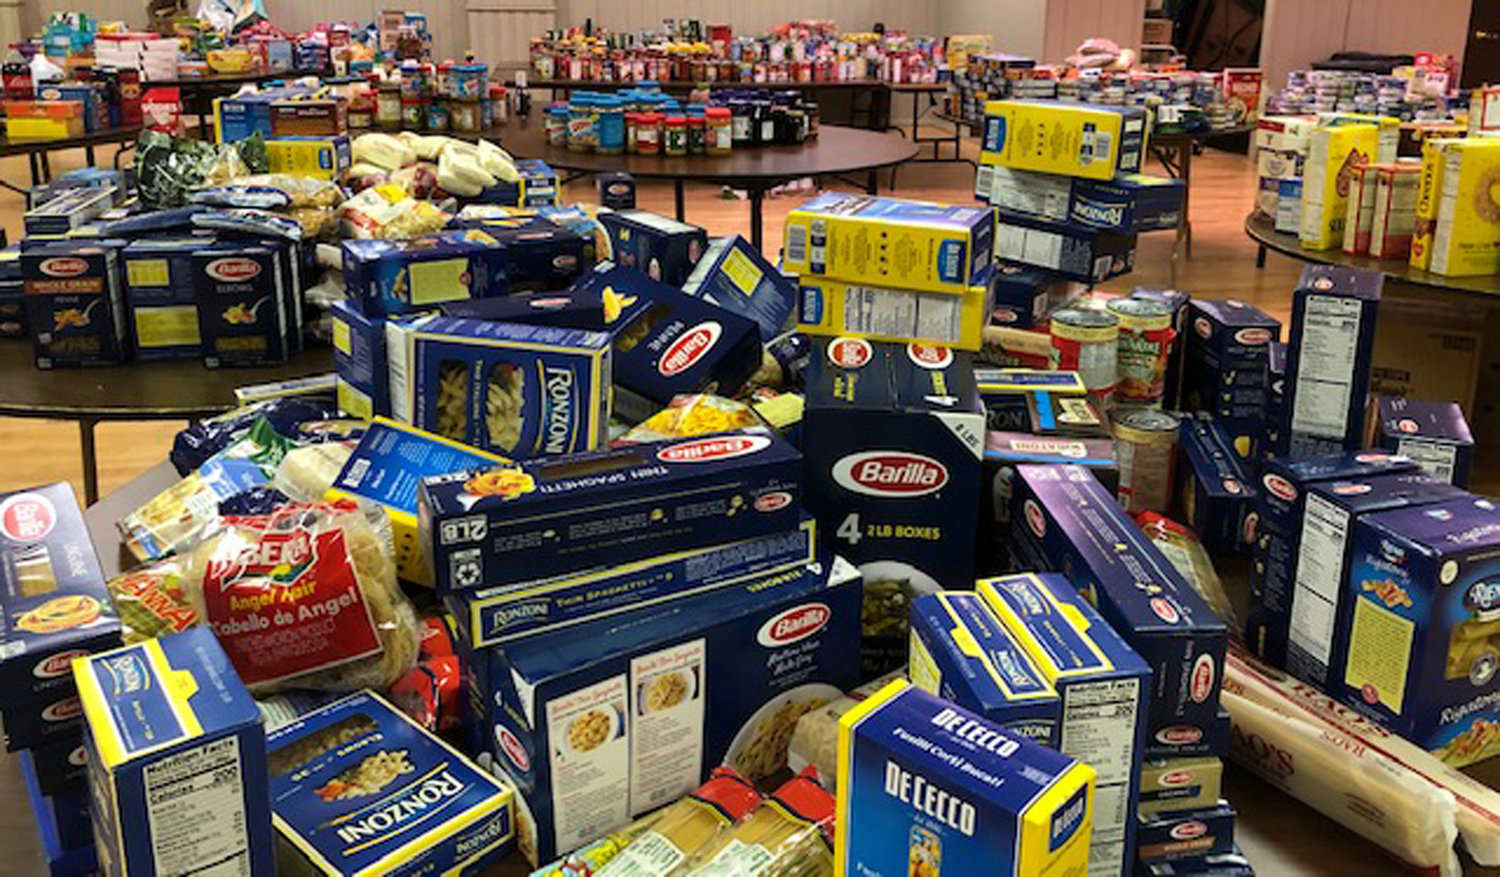 Our Lady of Lourdes Church received several donations for the food bank during their food drive from March 19-21.